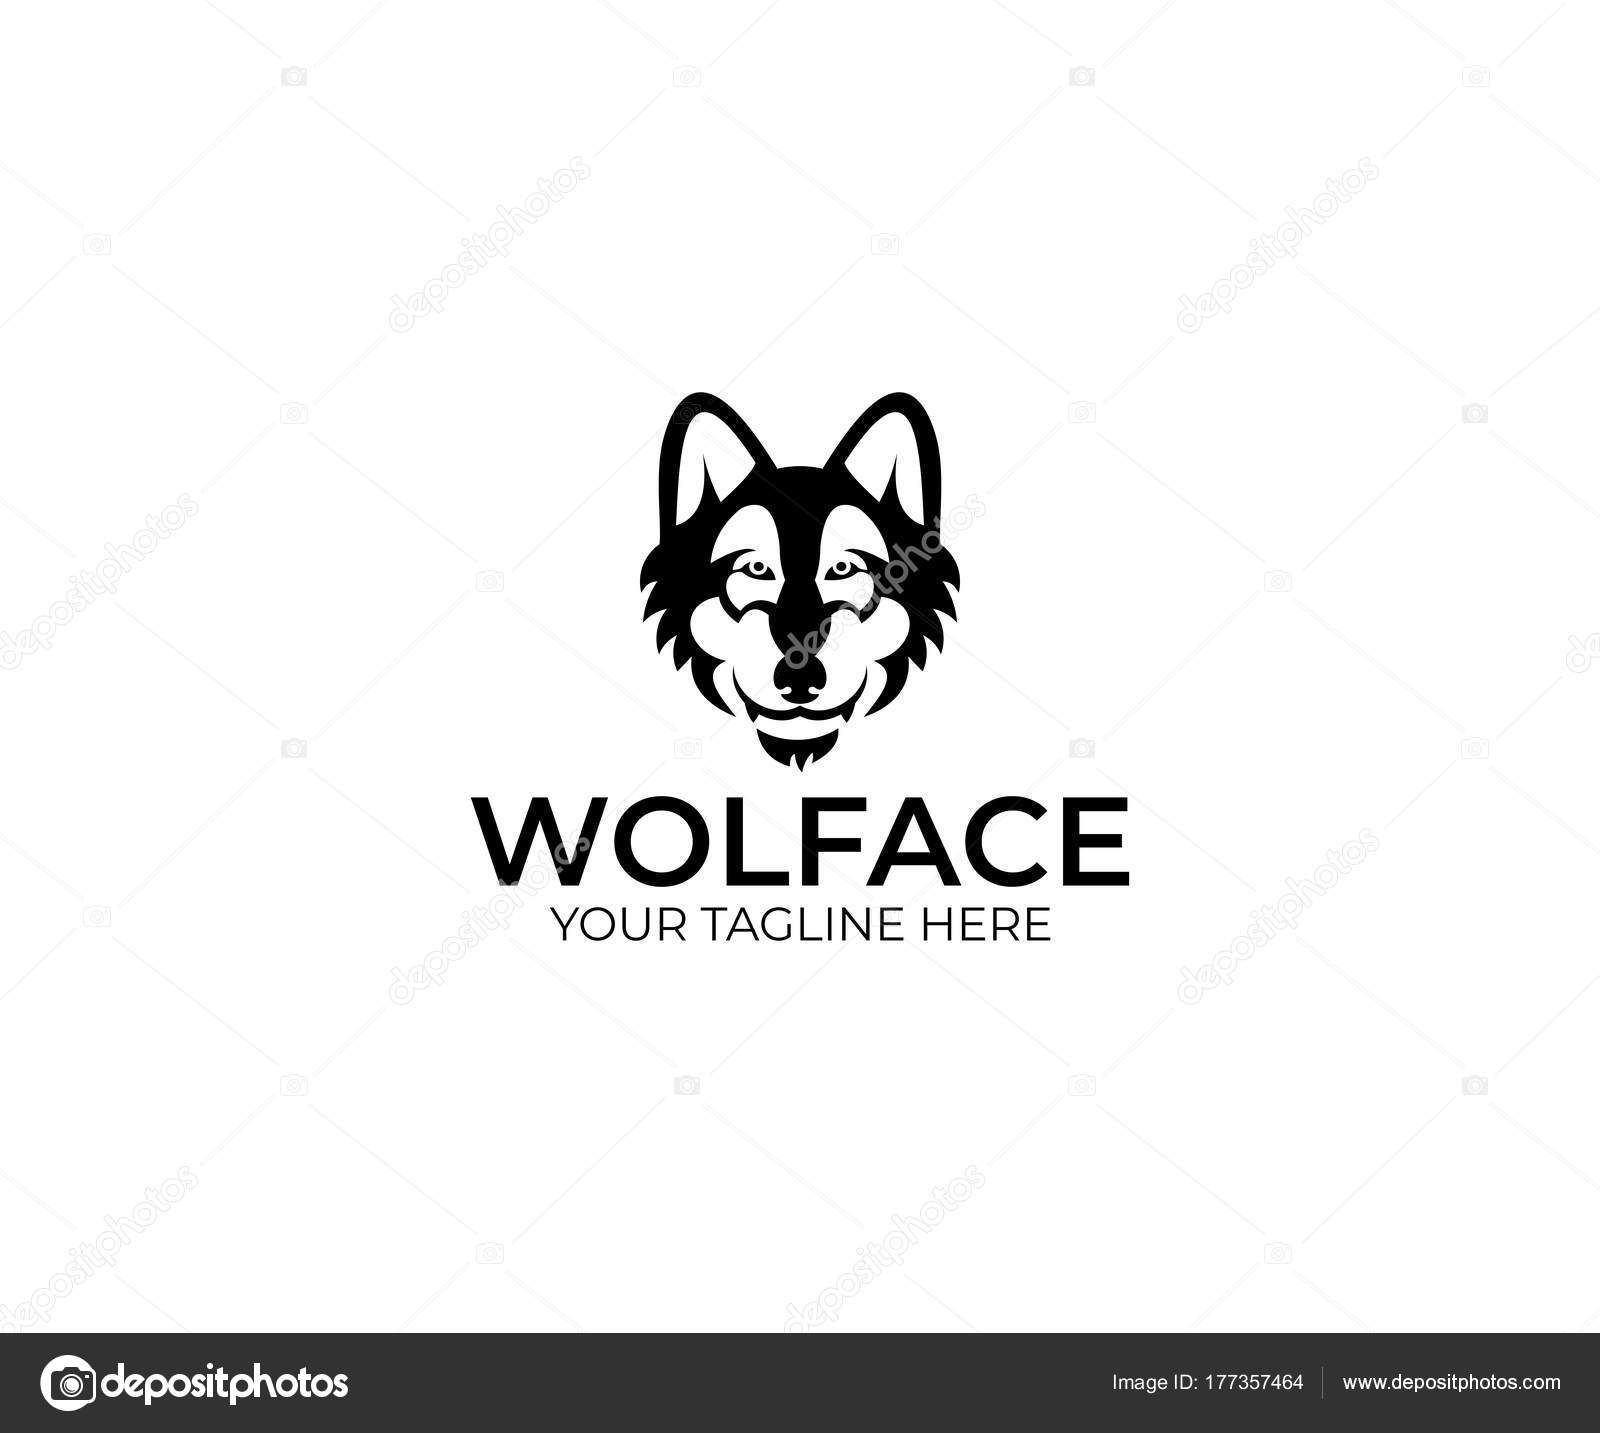 wolf face logo template animal vector design predator illustration